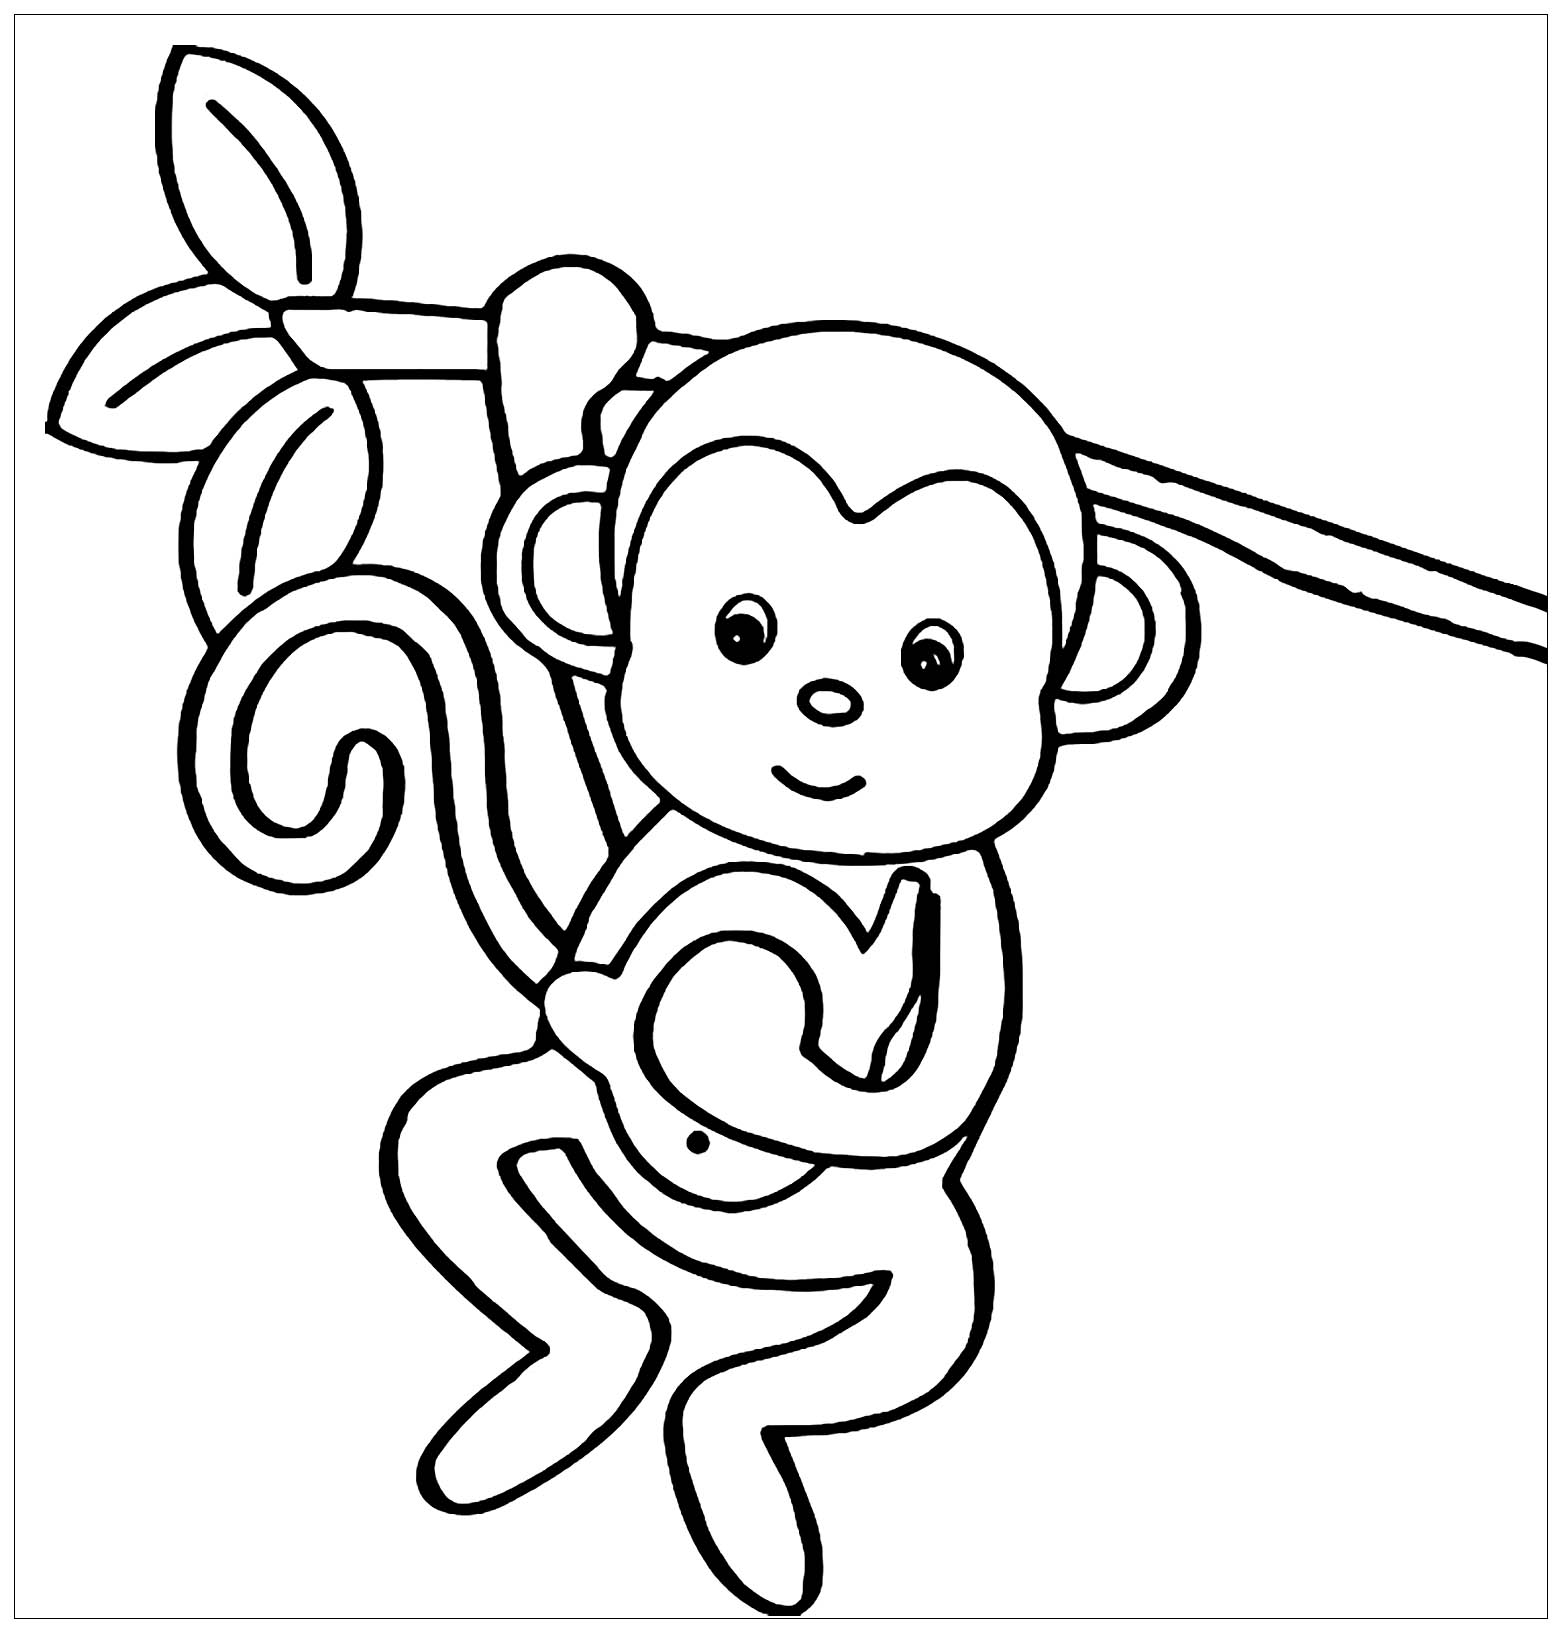 colouring pictures of monkeys free easy to print monkey coloring pages tulamama pictures colouring monkeys of